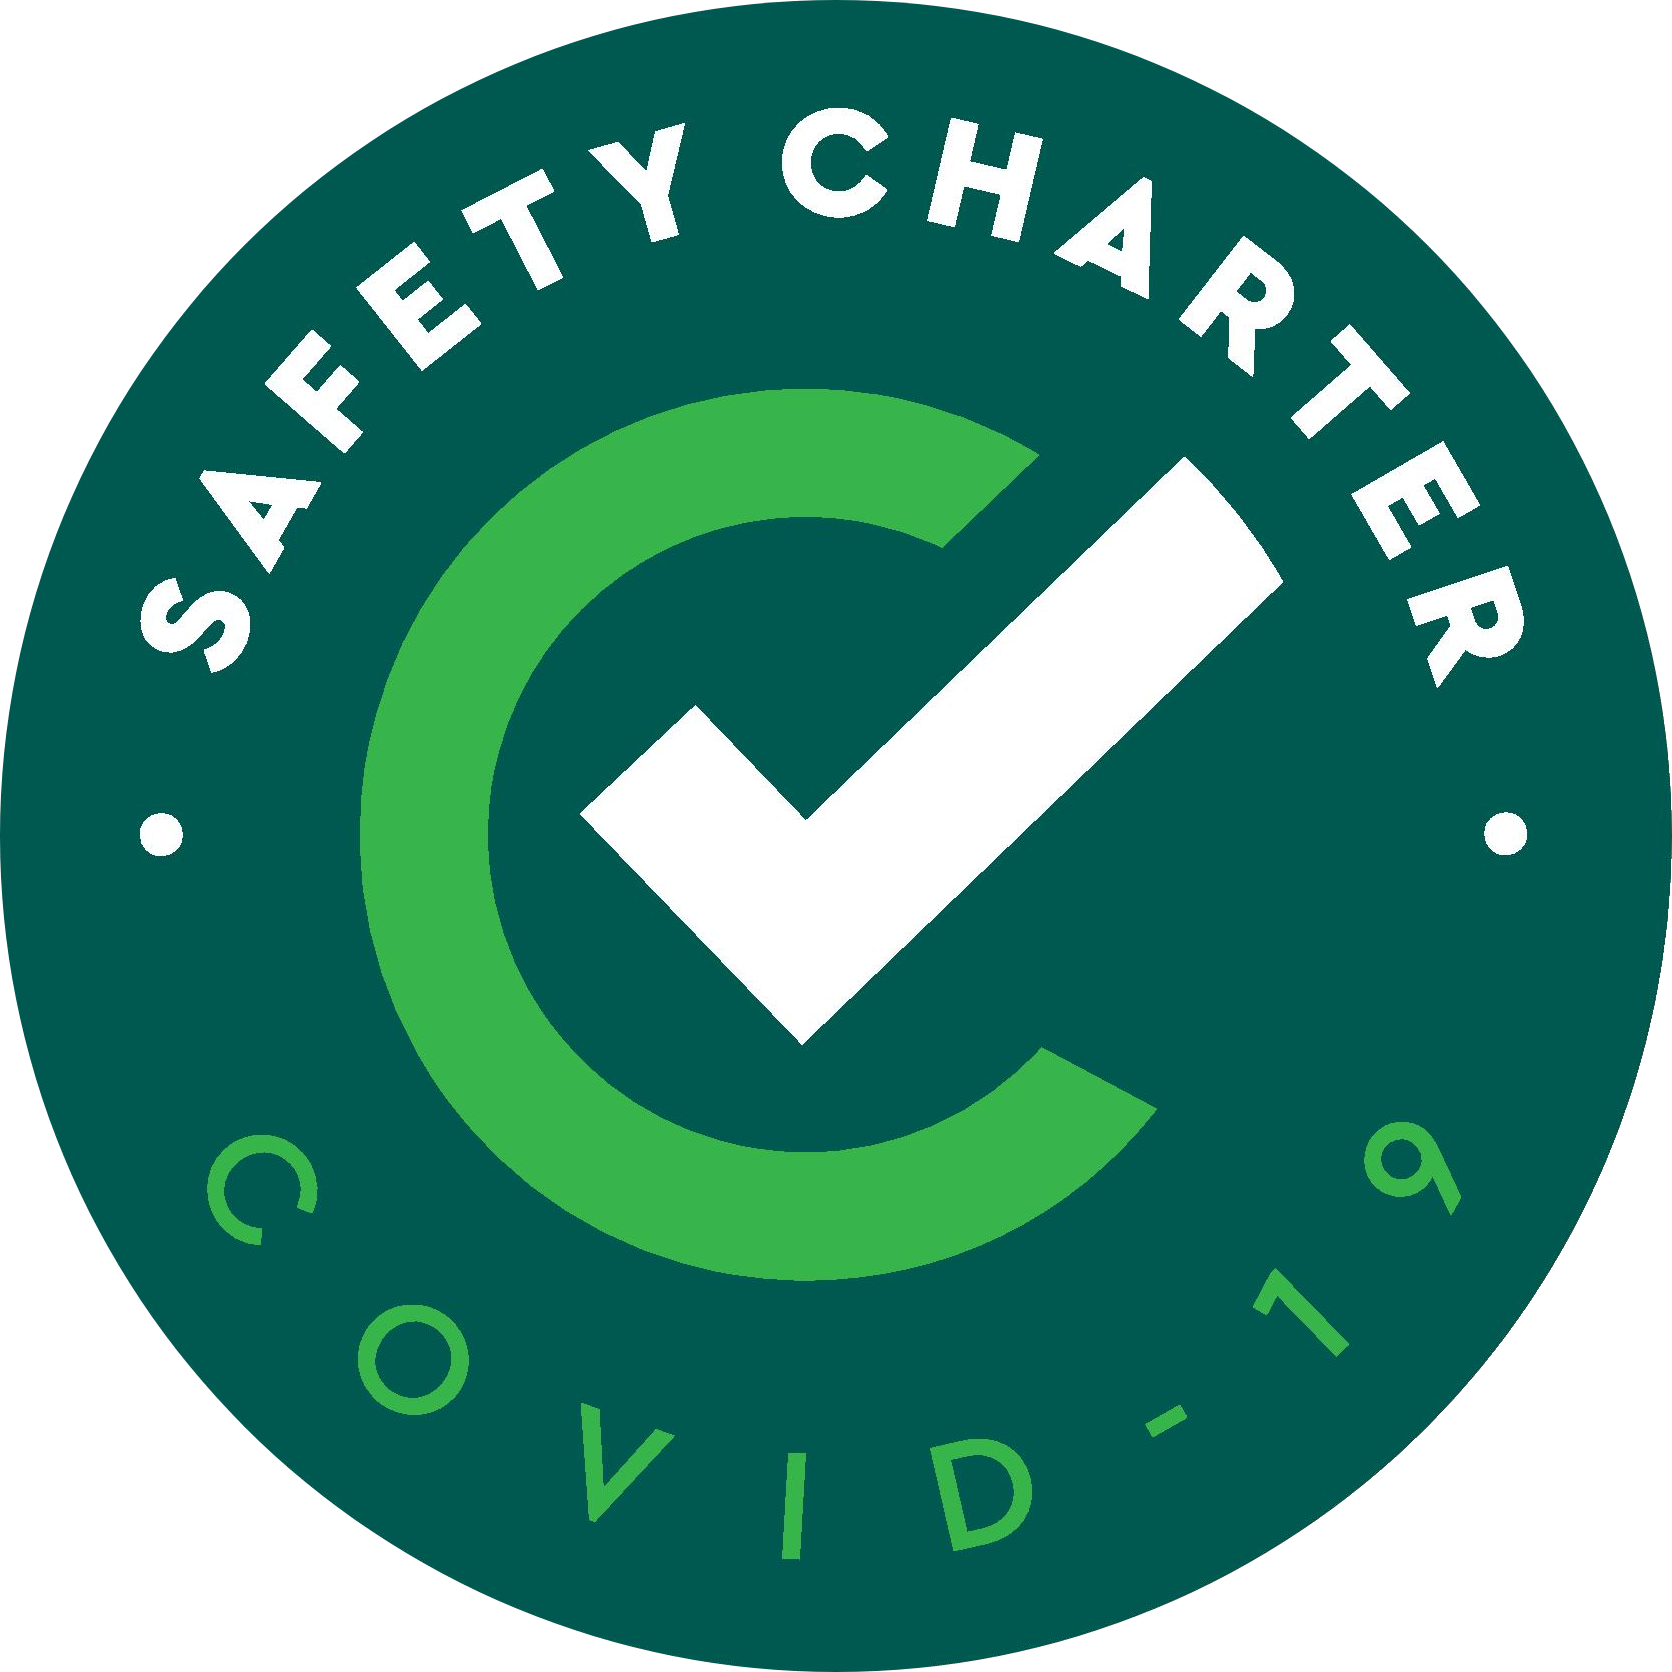 Safety Charter West County Hotel